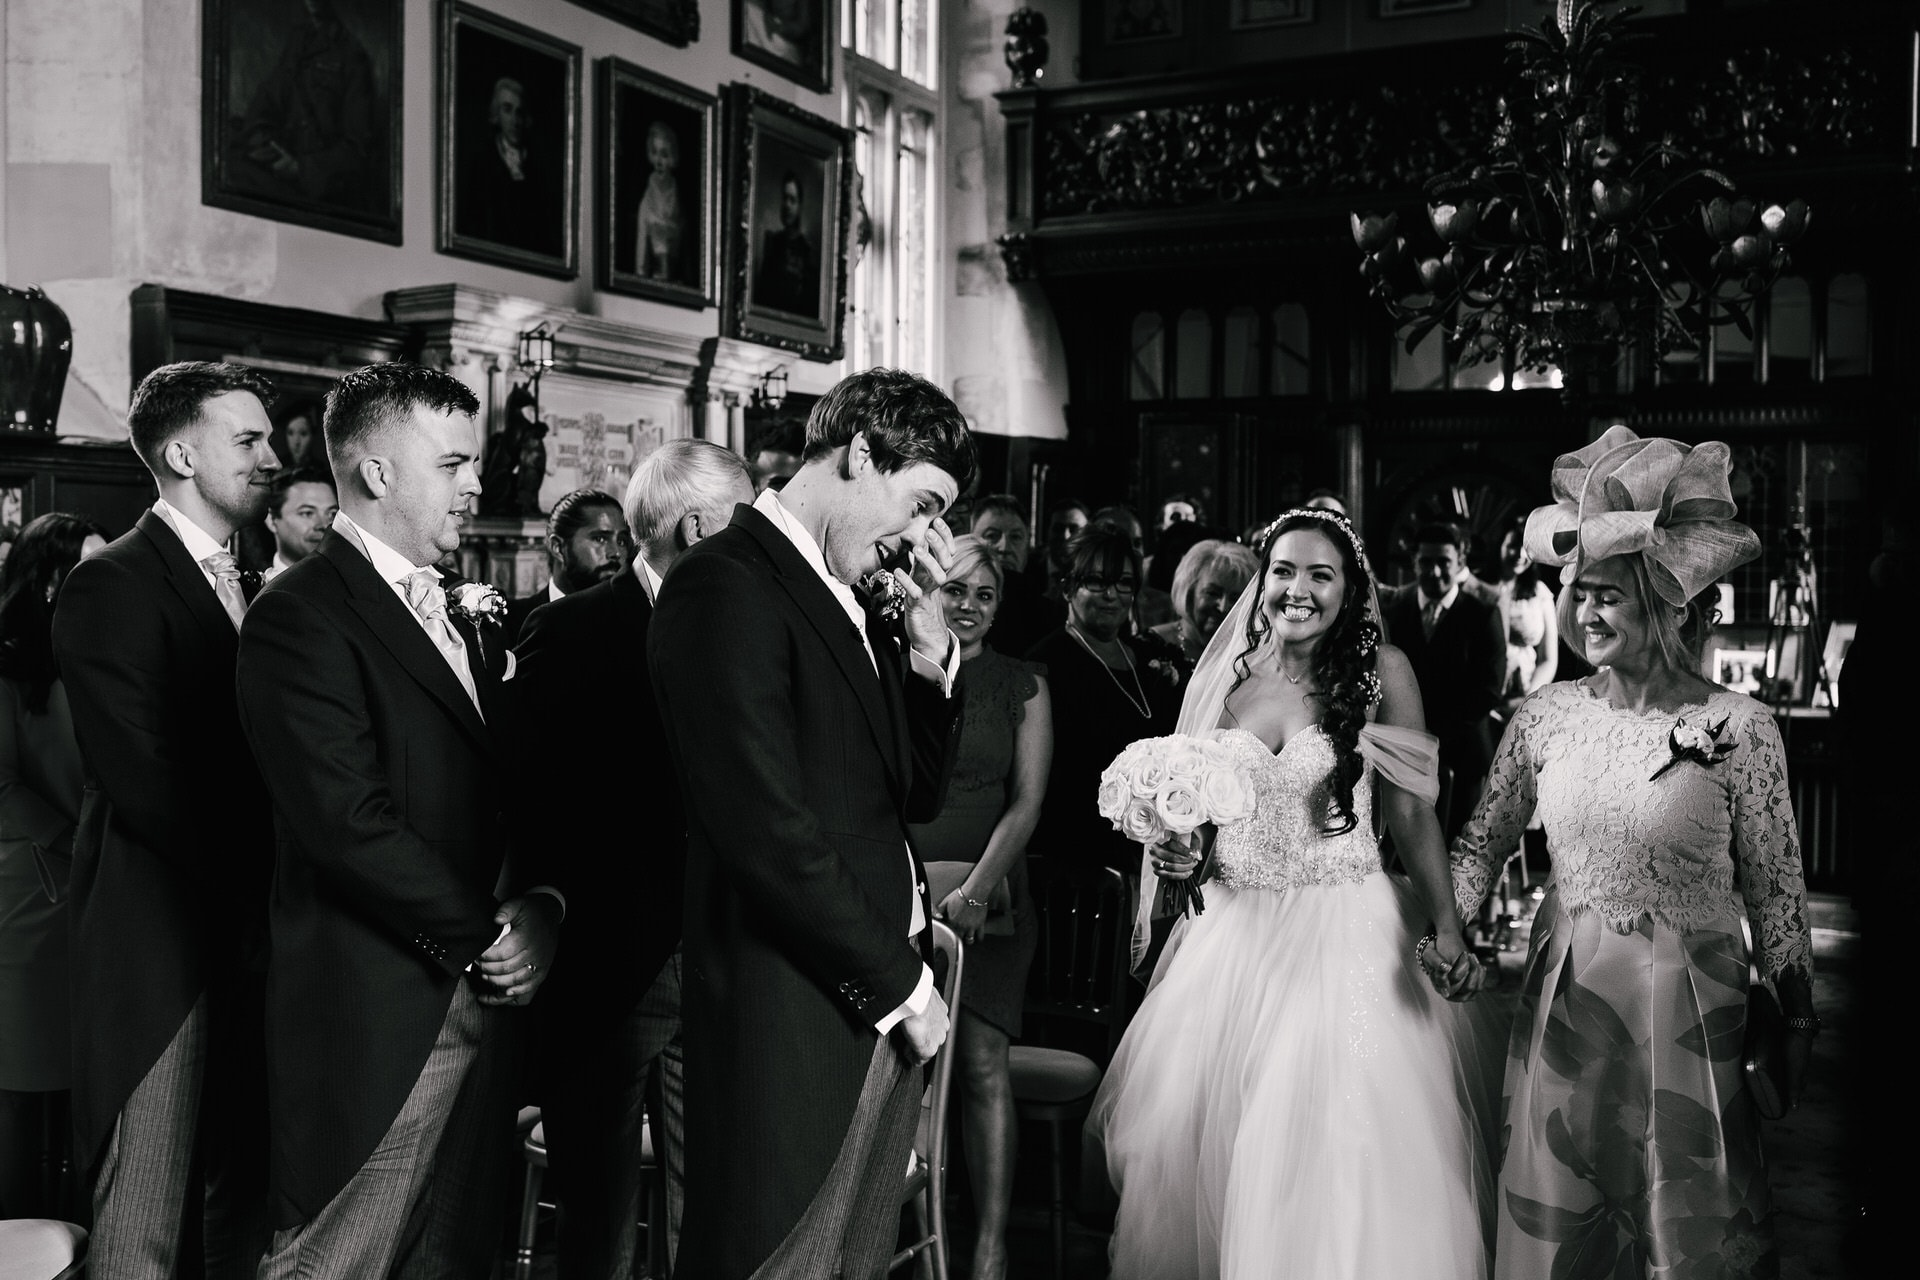 Groom's reaction as he sees bride walking down the aisle at Loseley Park Wedding